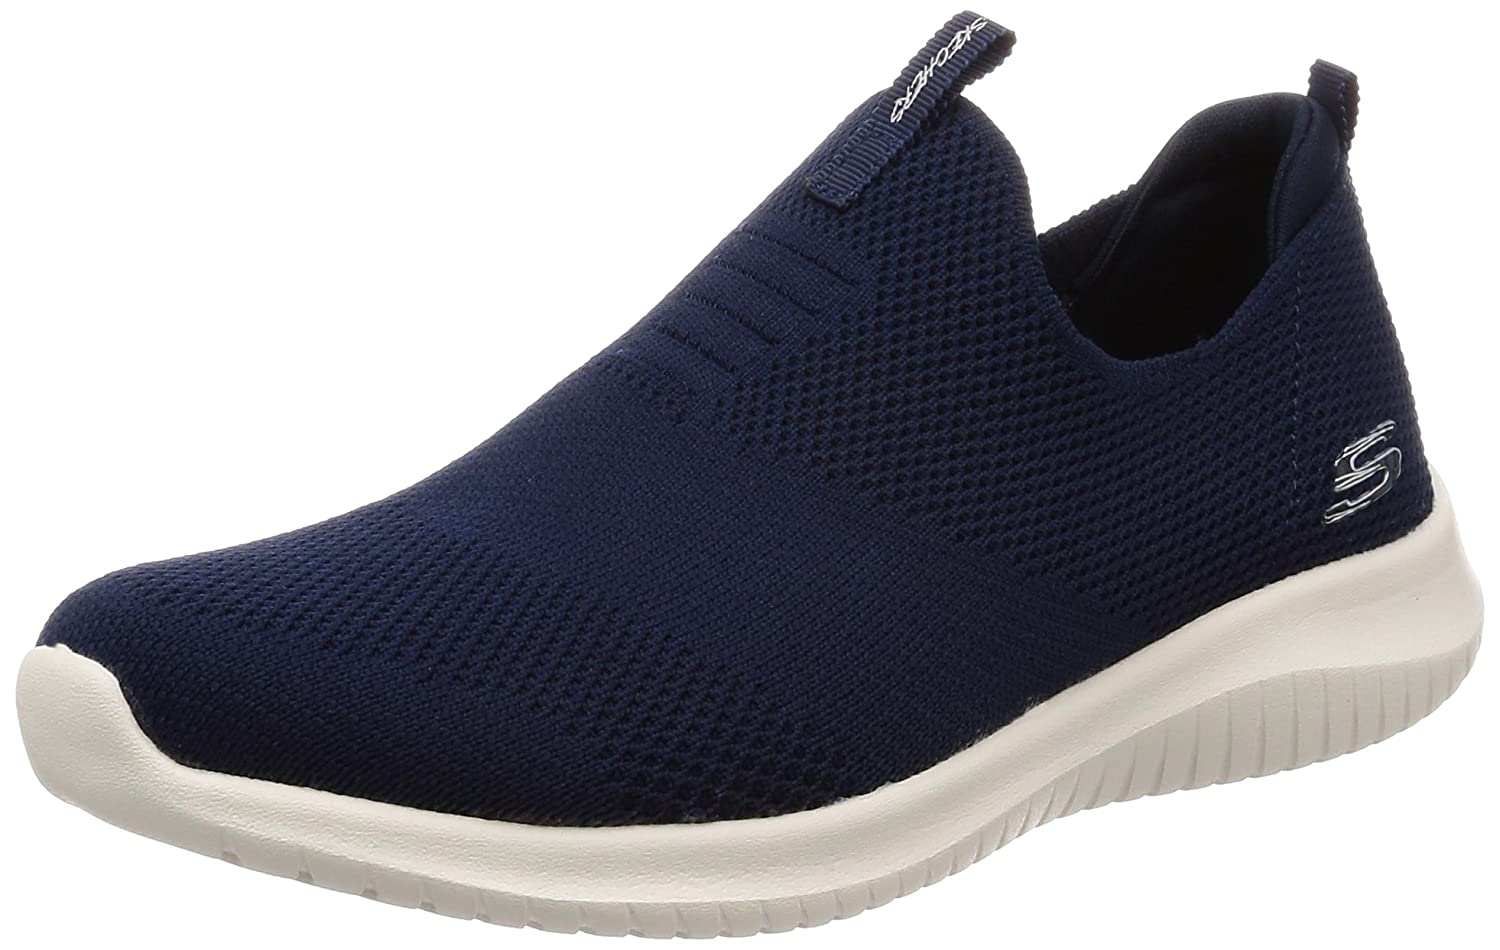 5095c8a90eb1 Skechers Women s 12837 Slip On Trainers  Amazon.co.uk  Shoes   Bags